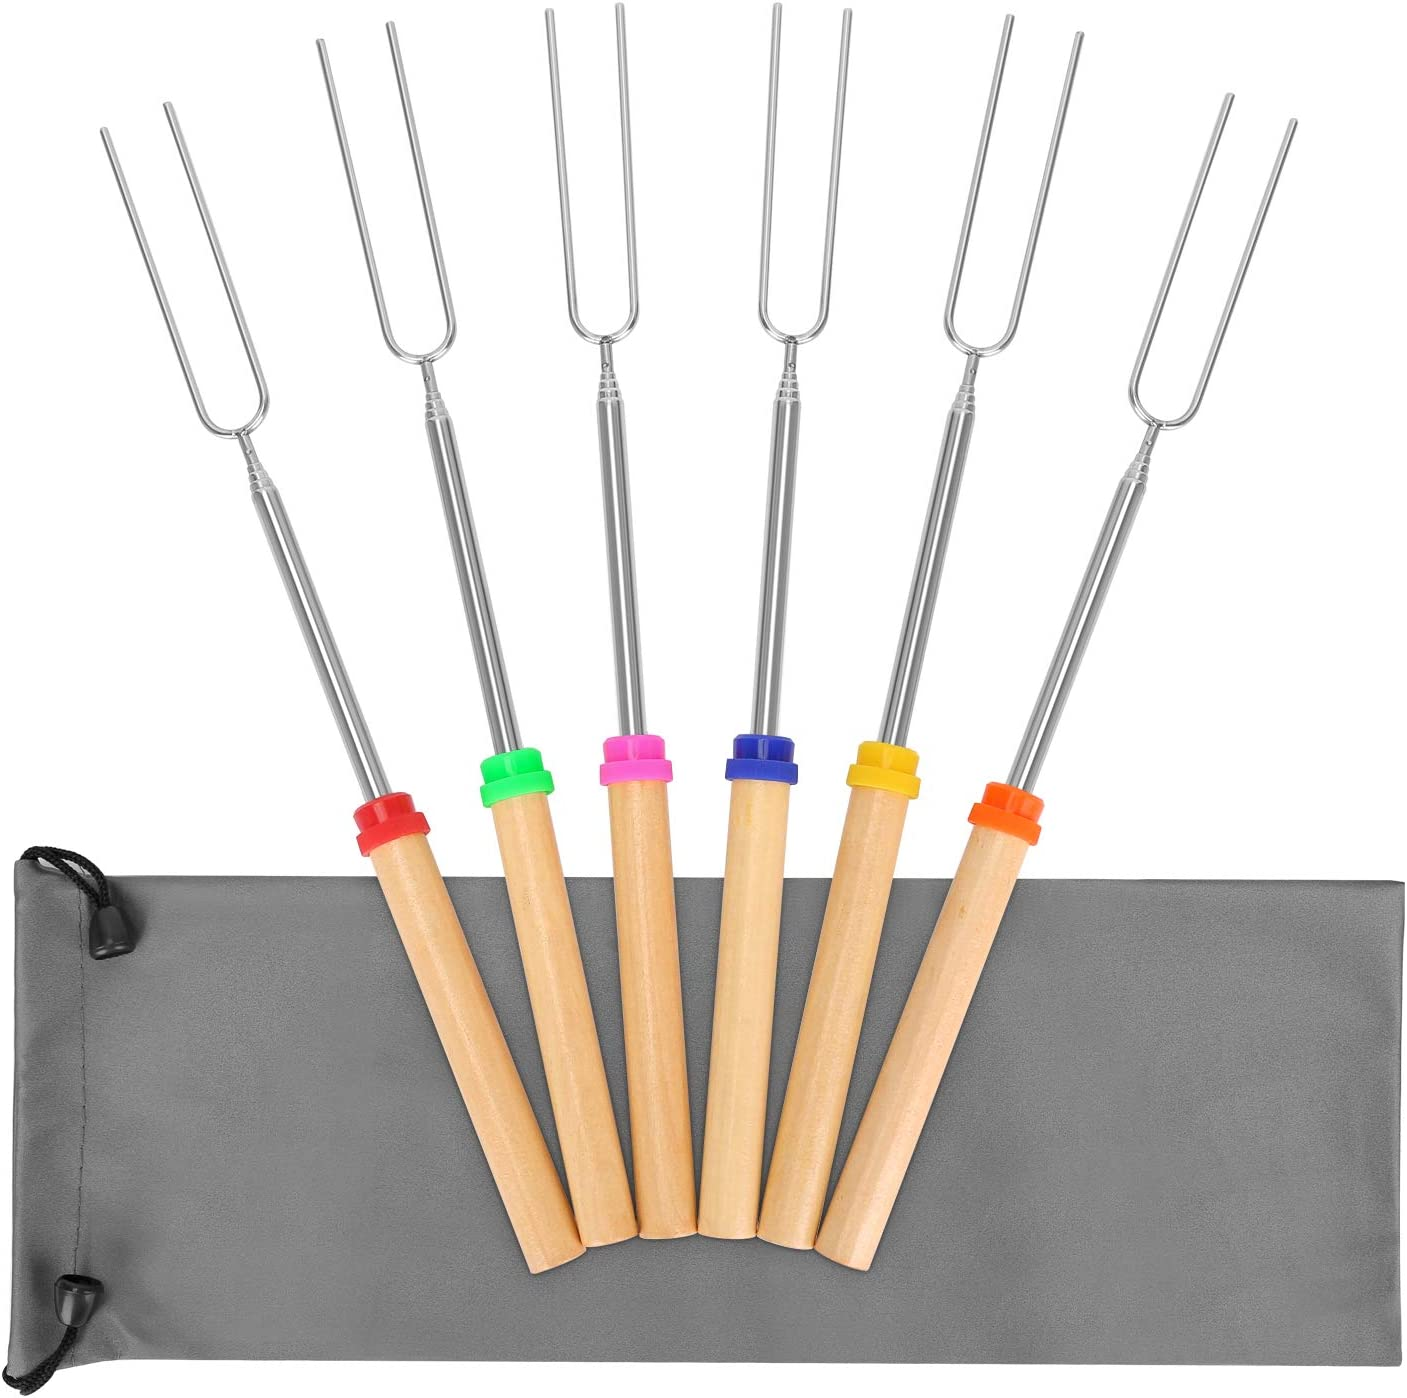 Kelfuoya Marshmallow Roasting Sticks 6 Pcs Smores Skewers Barbecue Forks 32inch Wooden Handle Telescoping Hot Dog Forks with Portable Bags